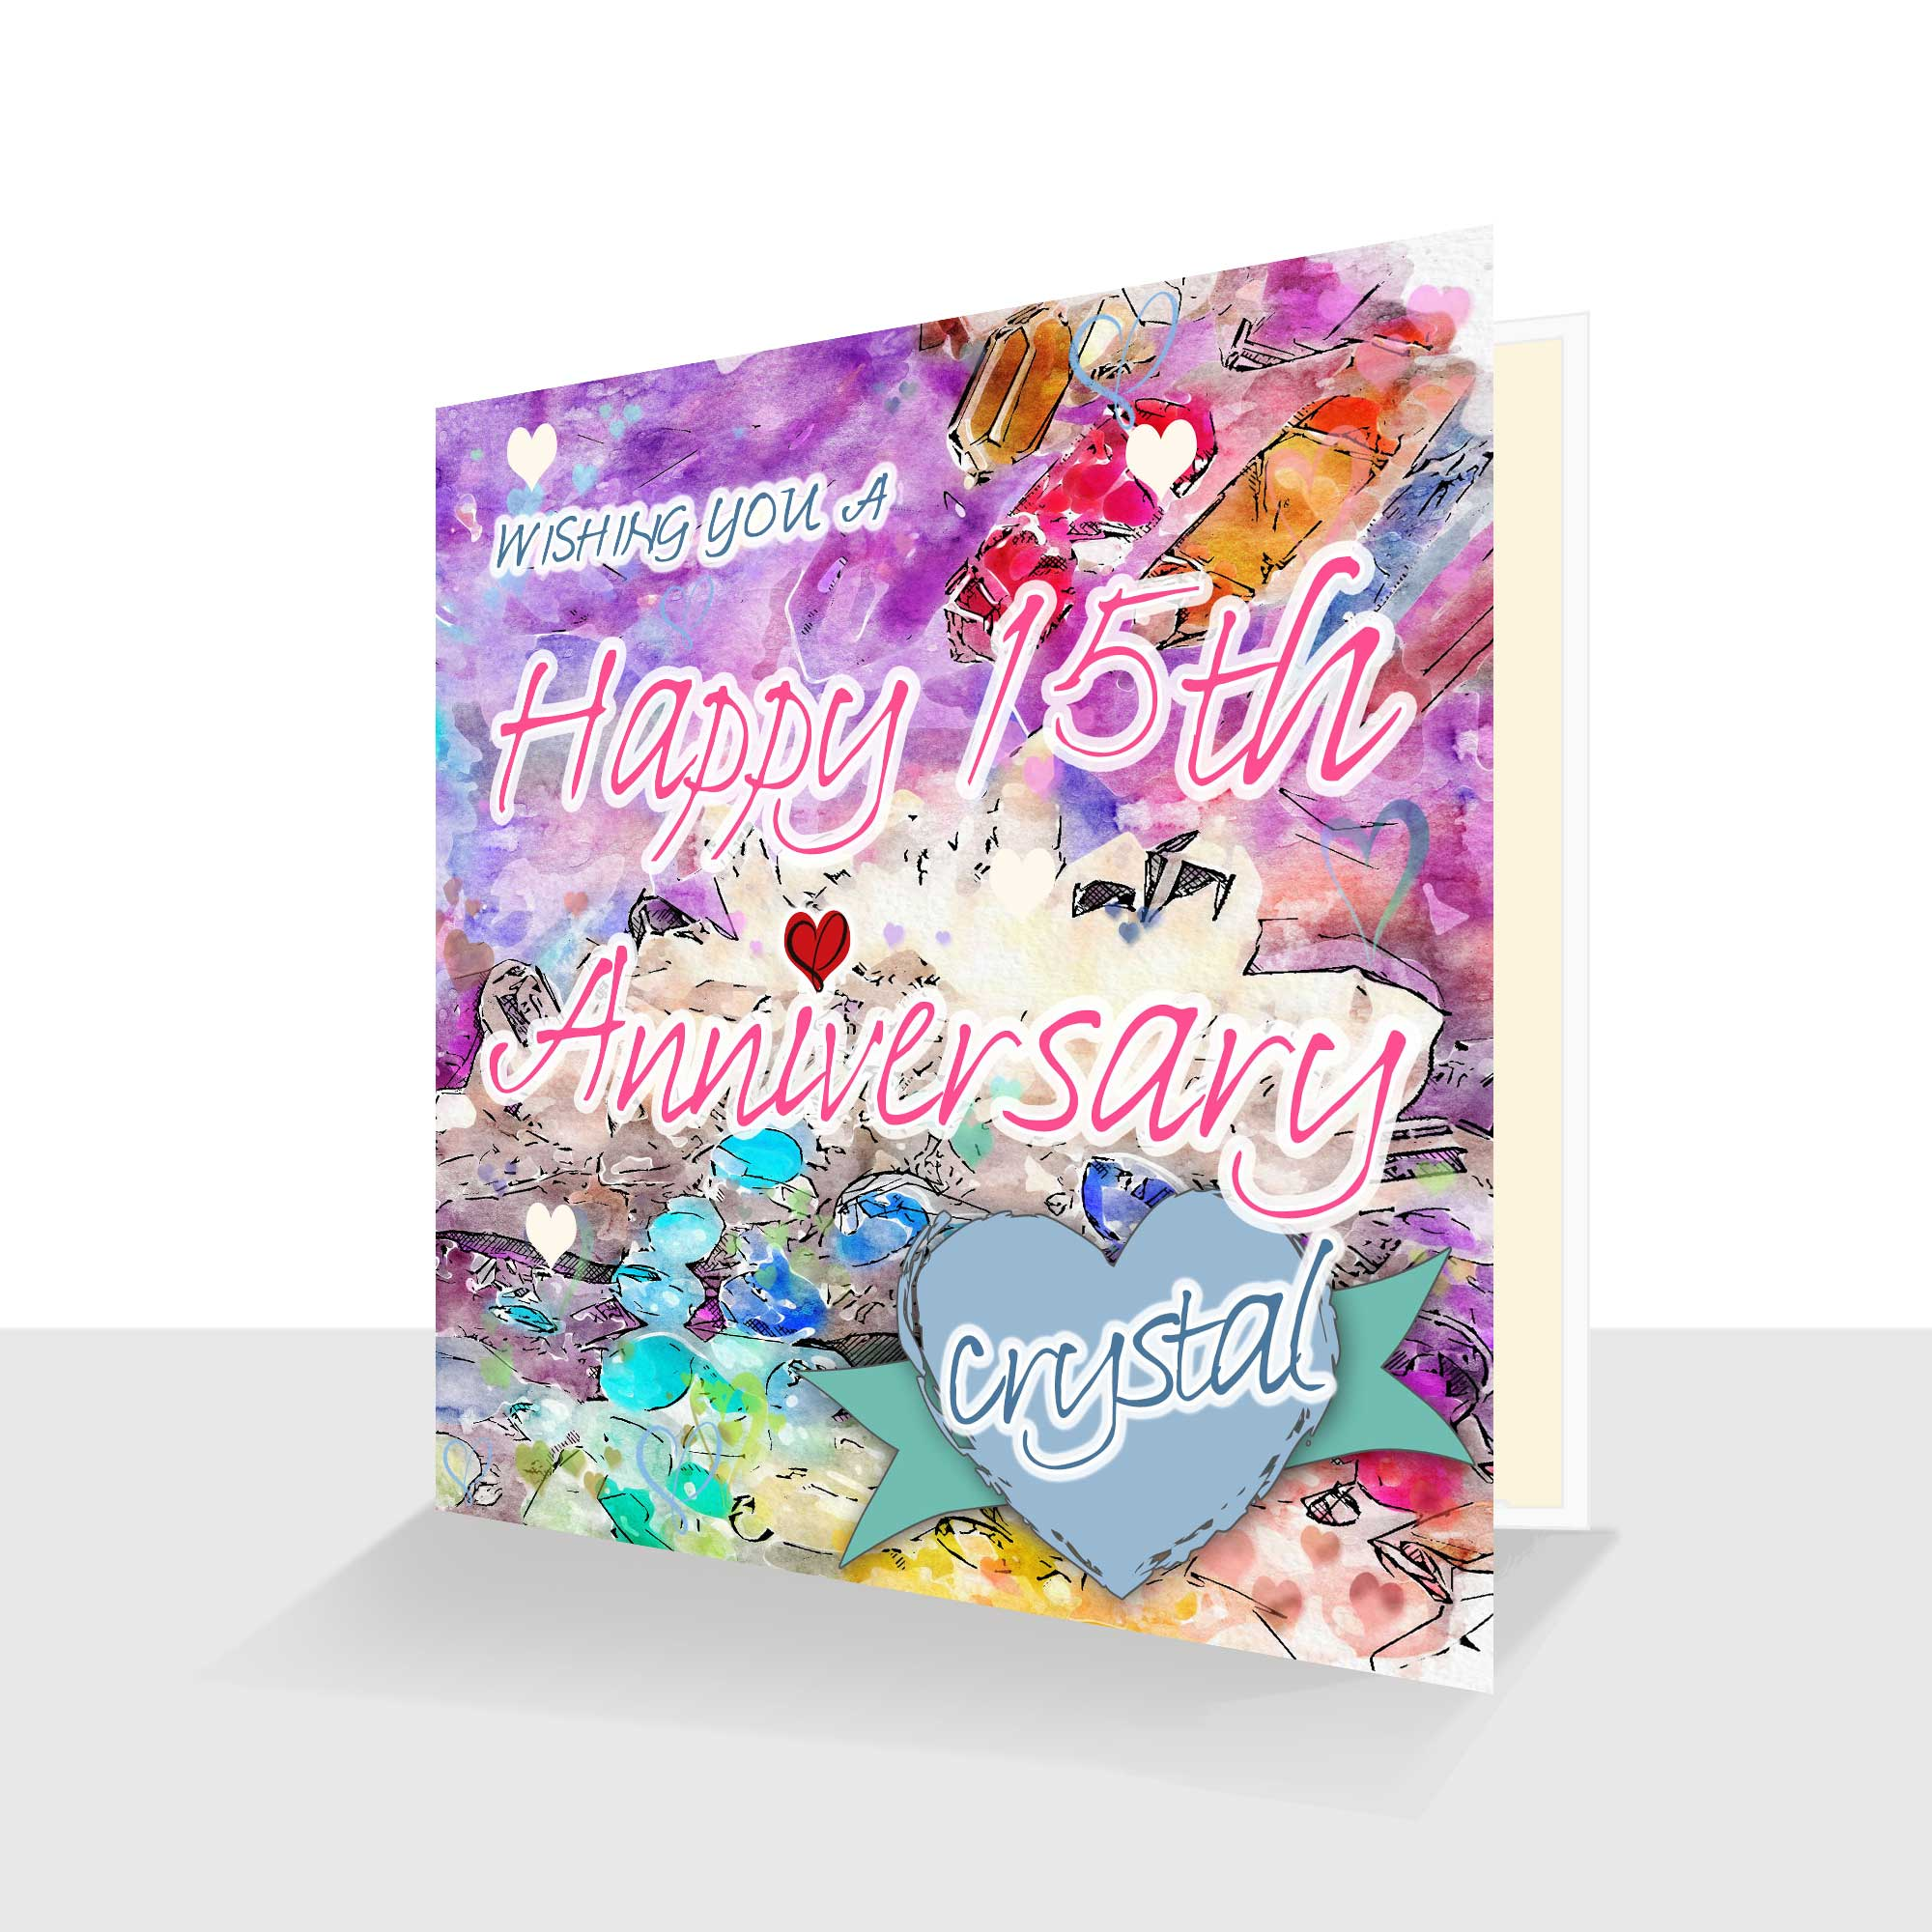 15th Wedding Anniversary Card: Crystal Wedding Anniversary : Watercolour Design